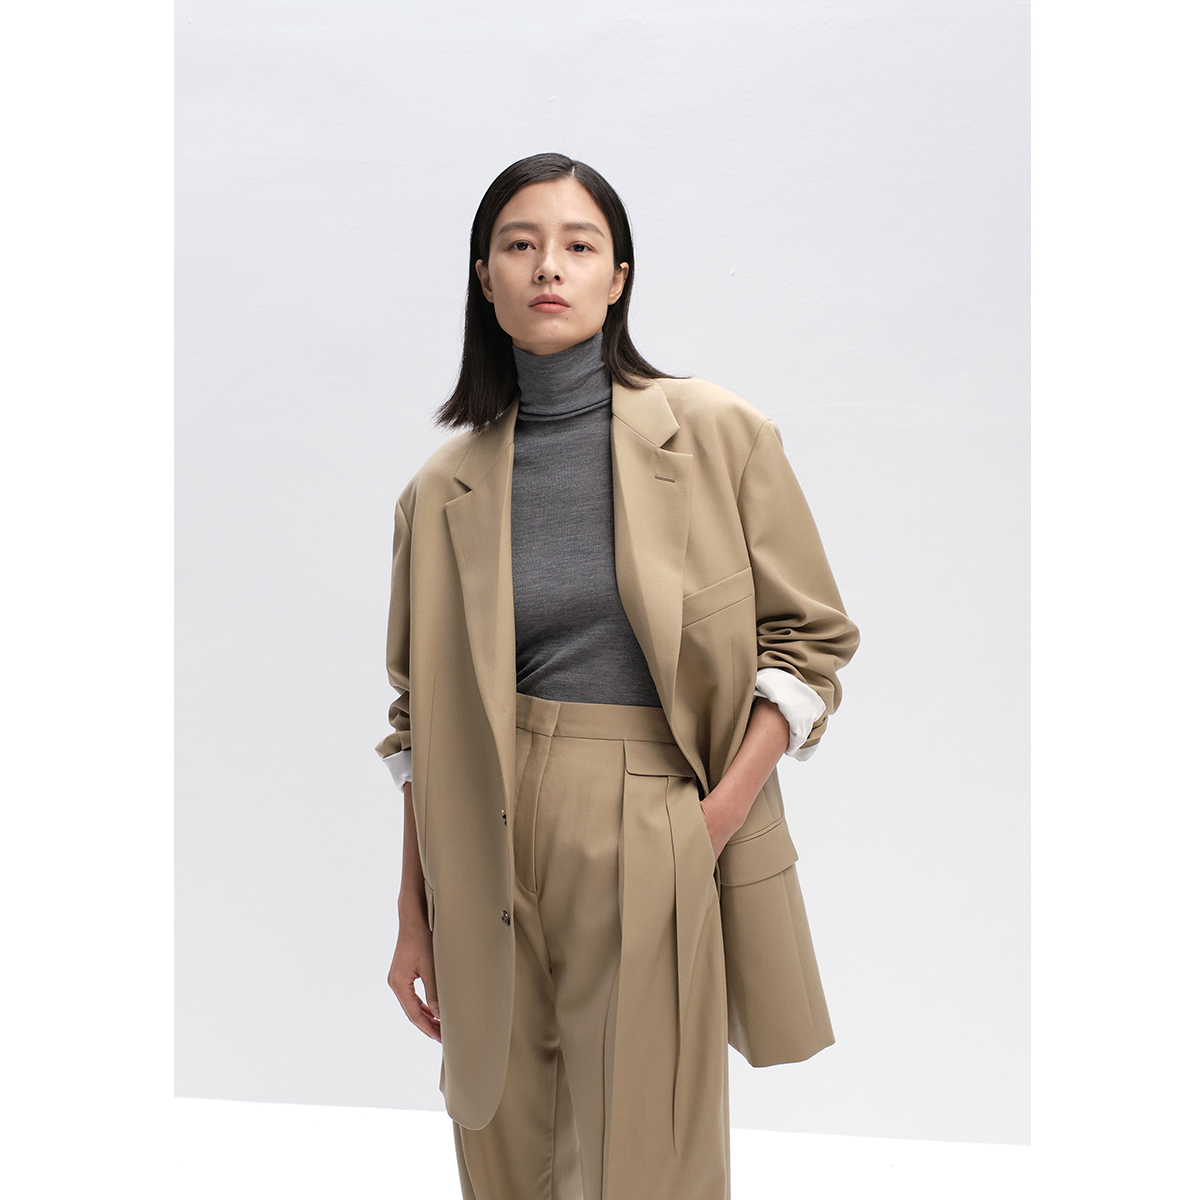 CHICJOC word-of-mouth original Gusi early spring new colors a hundred fashionable slightly down wide shoulders do not pick a person profile suit